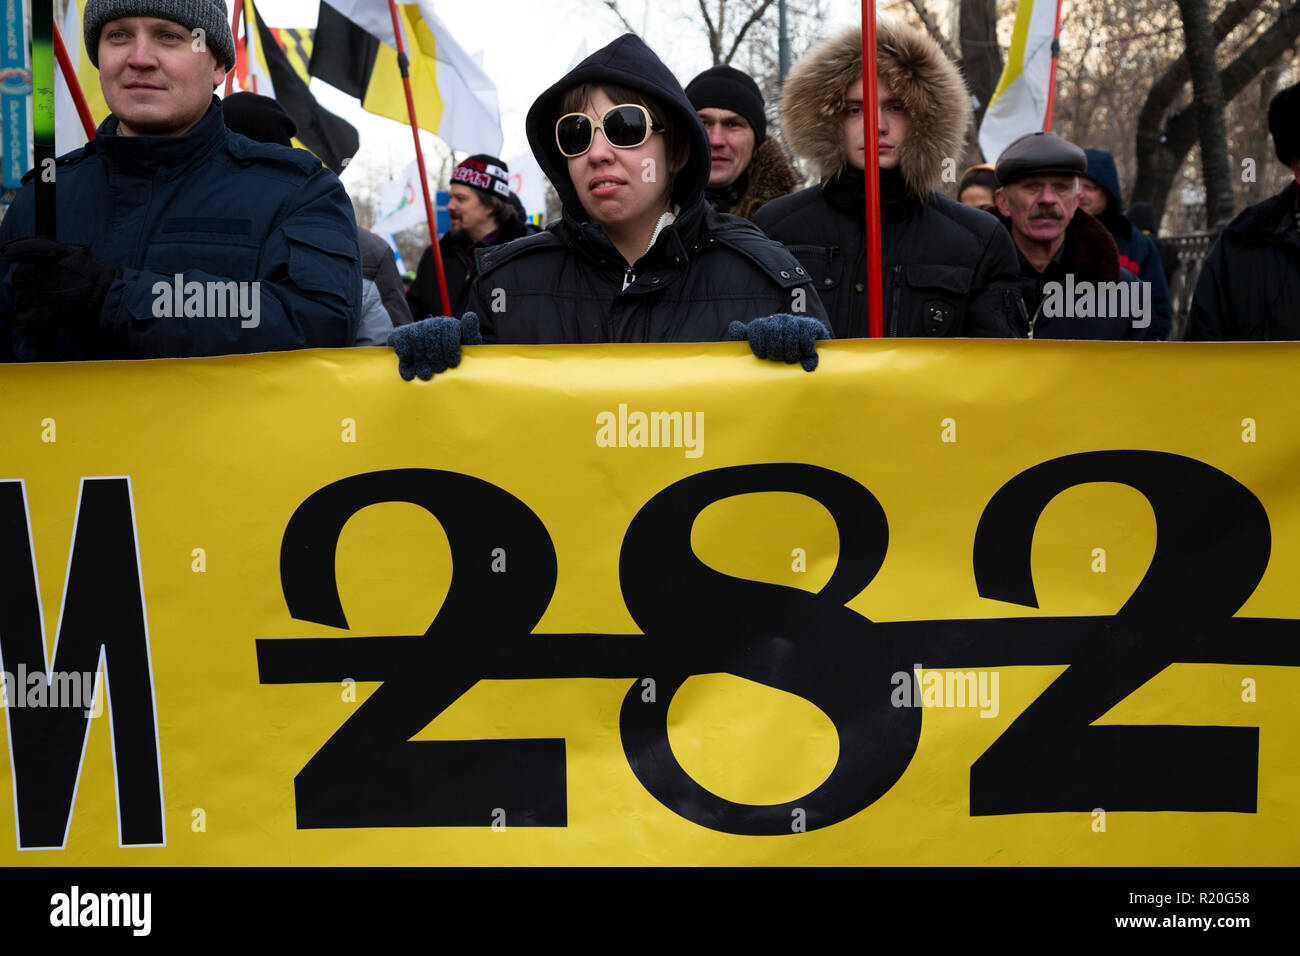 People hold a banner against Article 282 of the Federal Criminal Code of the Russian Federation on the march in defense of political prisoners, Moscow - Stock Image